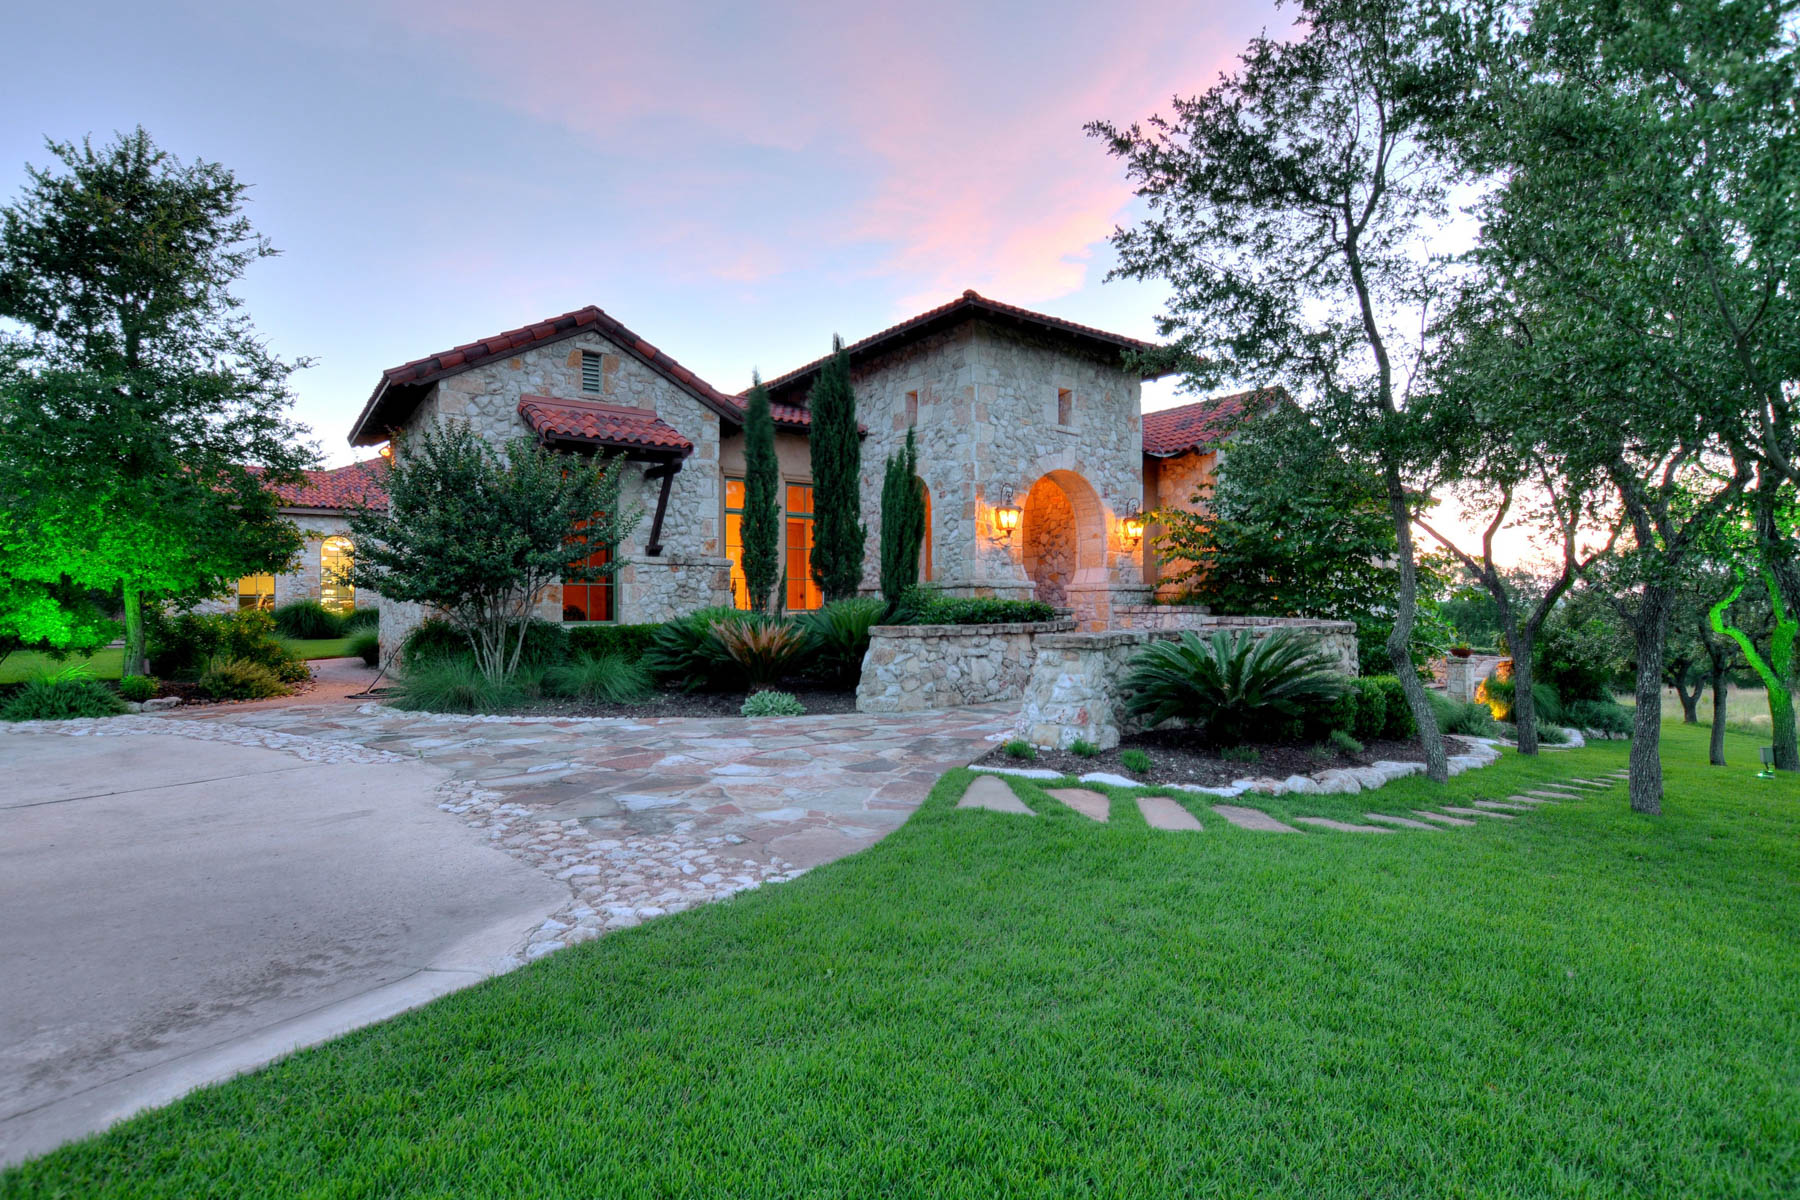 Single Family Home for Sale at Italian Inspired Masterpiece in Cordillera Ranch 533 Clubs Dr Boerne, Texas 78006 United States